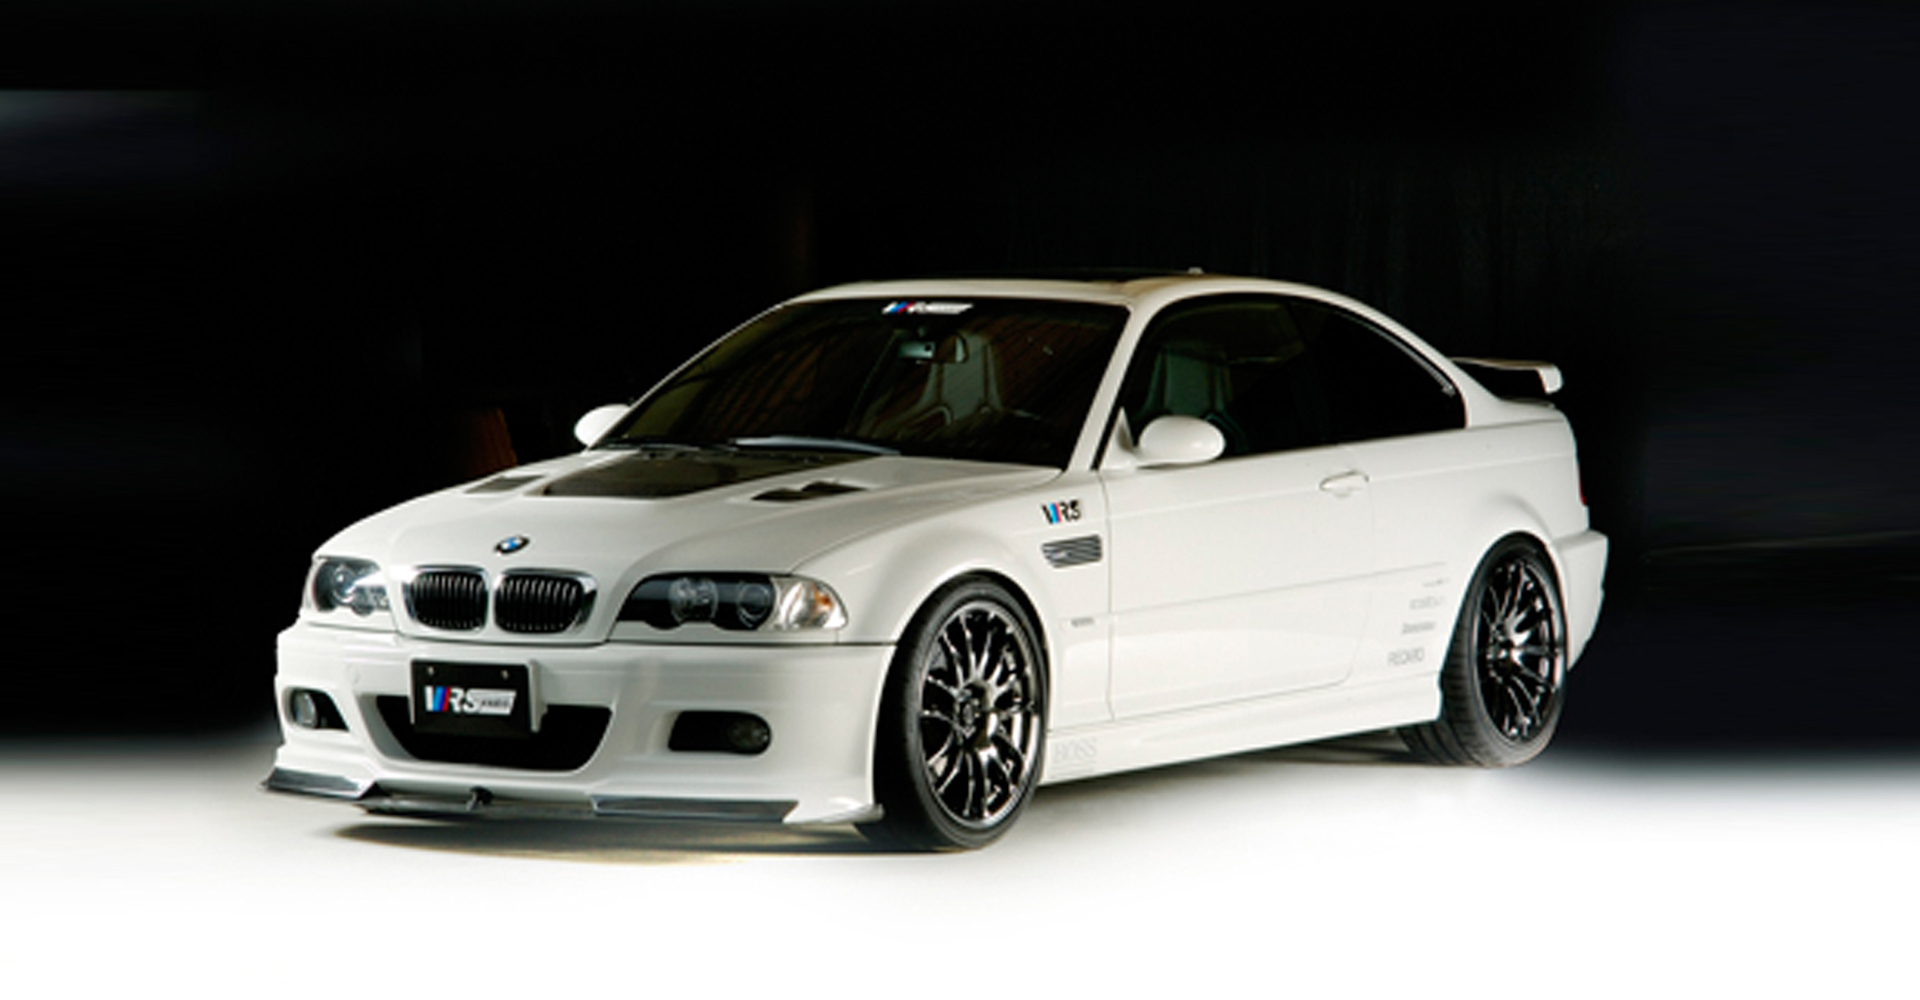 Vrs Bmw E46 M3 Street Version